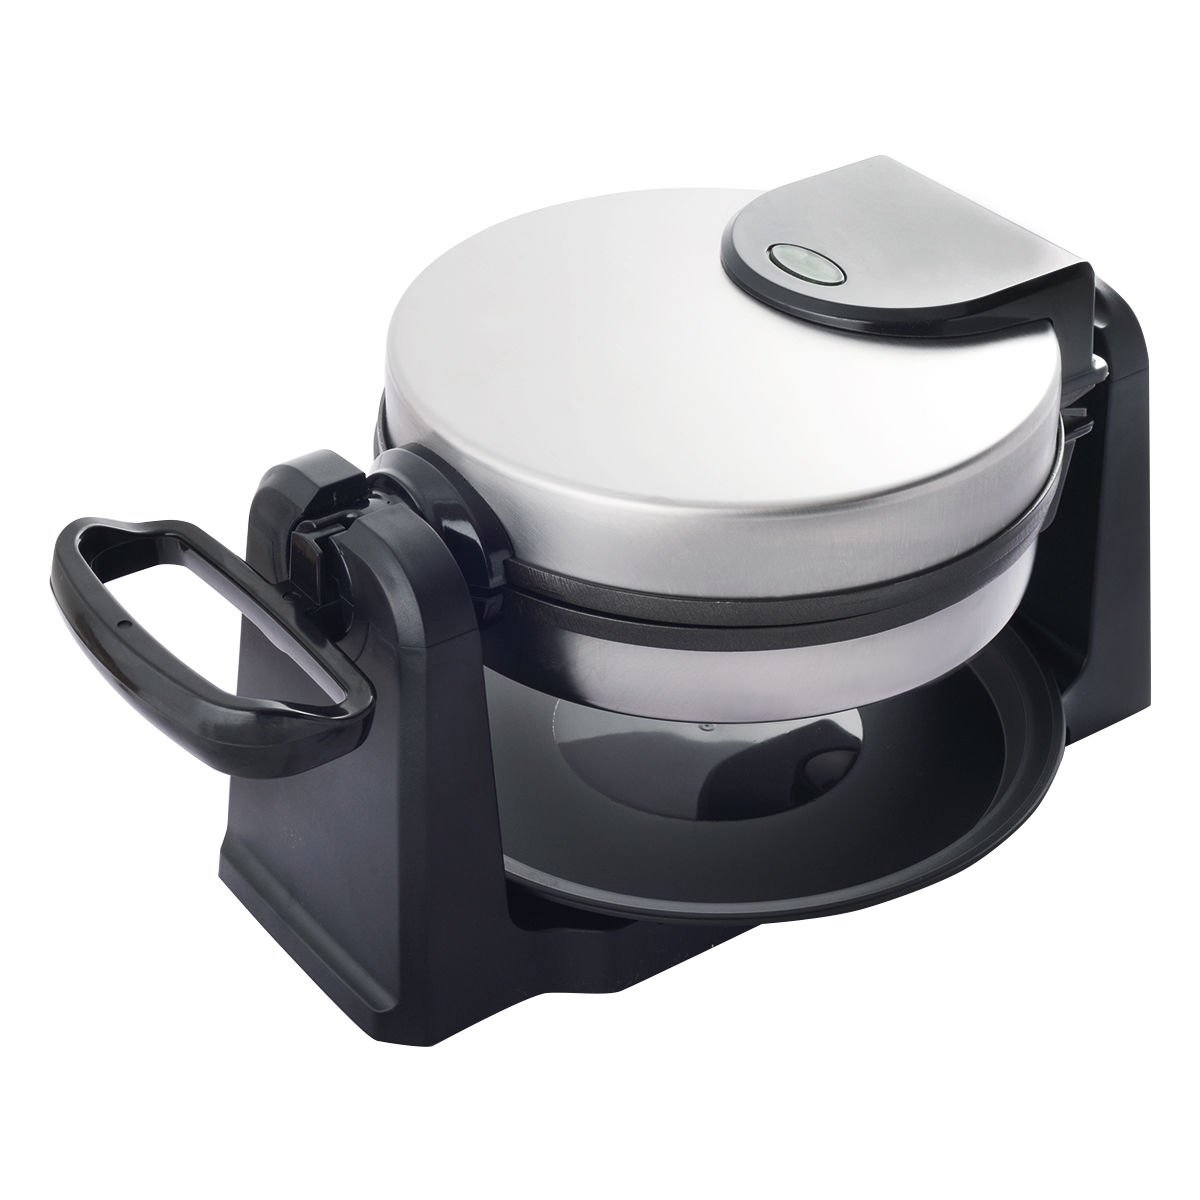 GHP 1080W Stainless Steel Non-Stick Belgian Waffle Maker with Removable Drip Tray